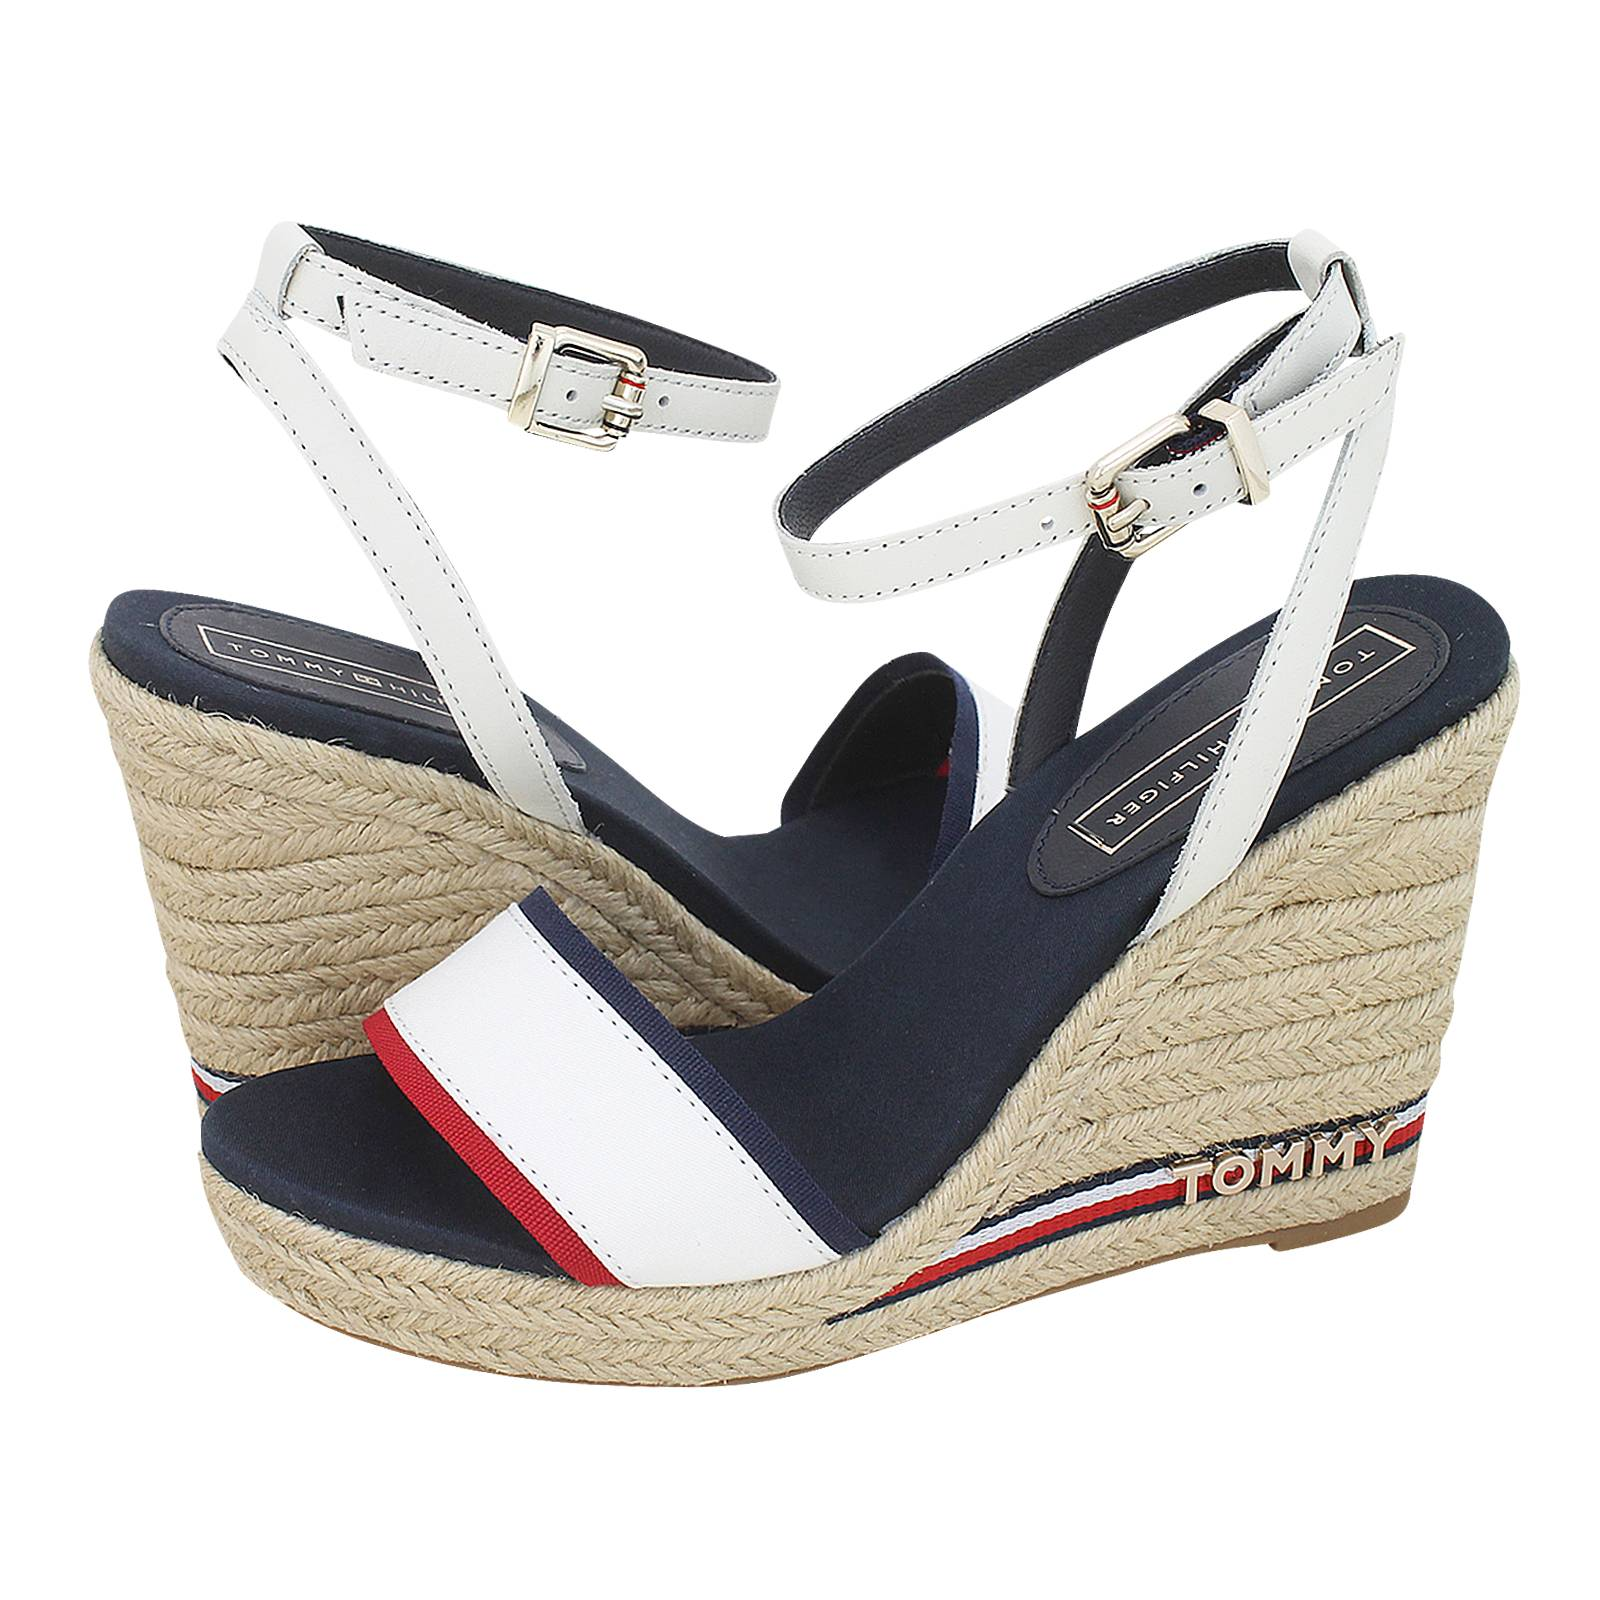 3fc38d586 Tommy Hilfiger Iconic Elena Corporate Ribbon platforms. Iconic Elena Corporate  Ribbon